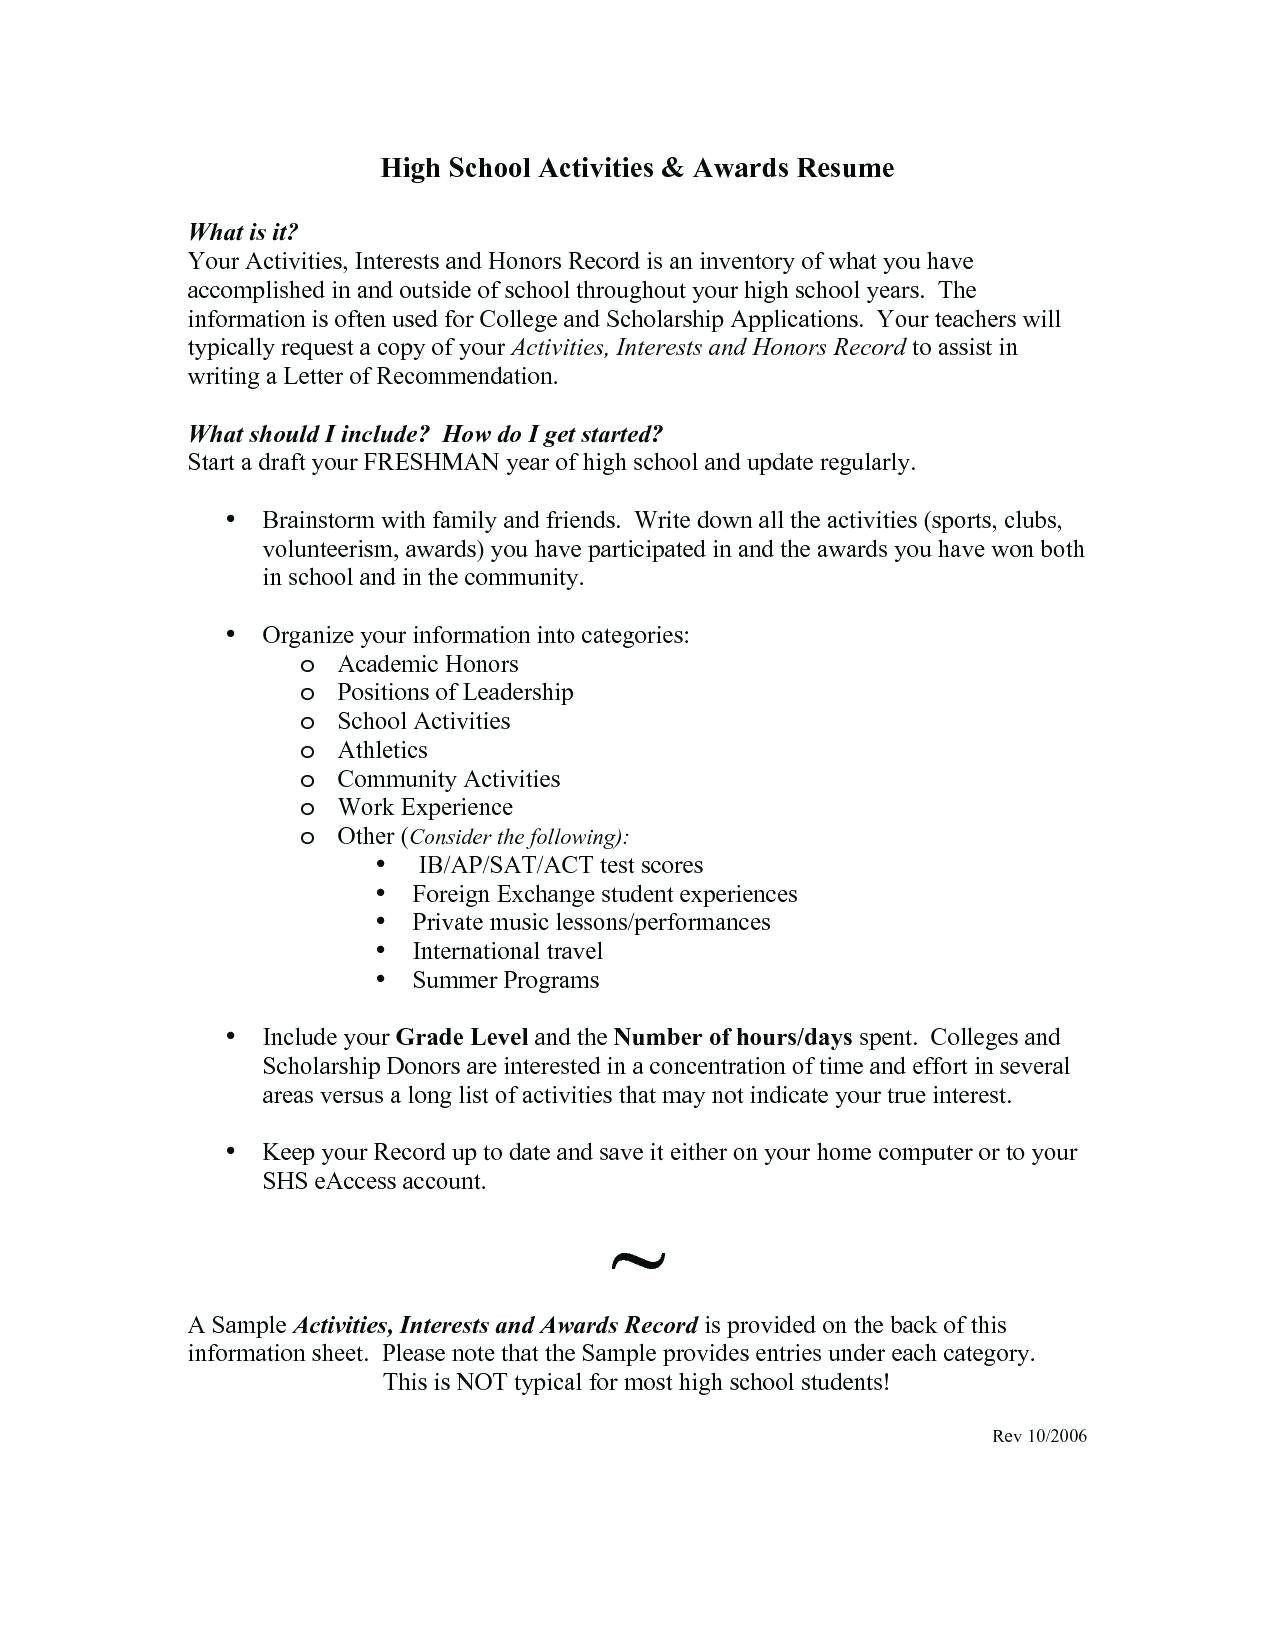 honors and awards resume examples unique model example best skills for re high school Resume Honors And Awards Resume Examples